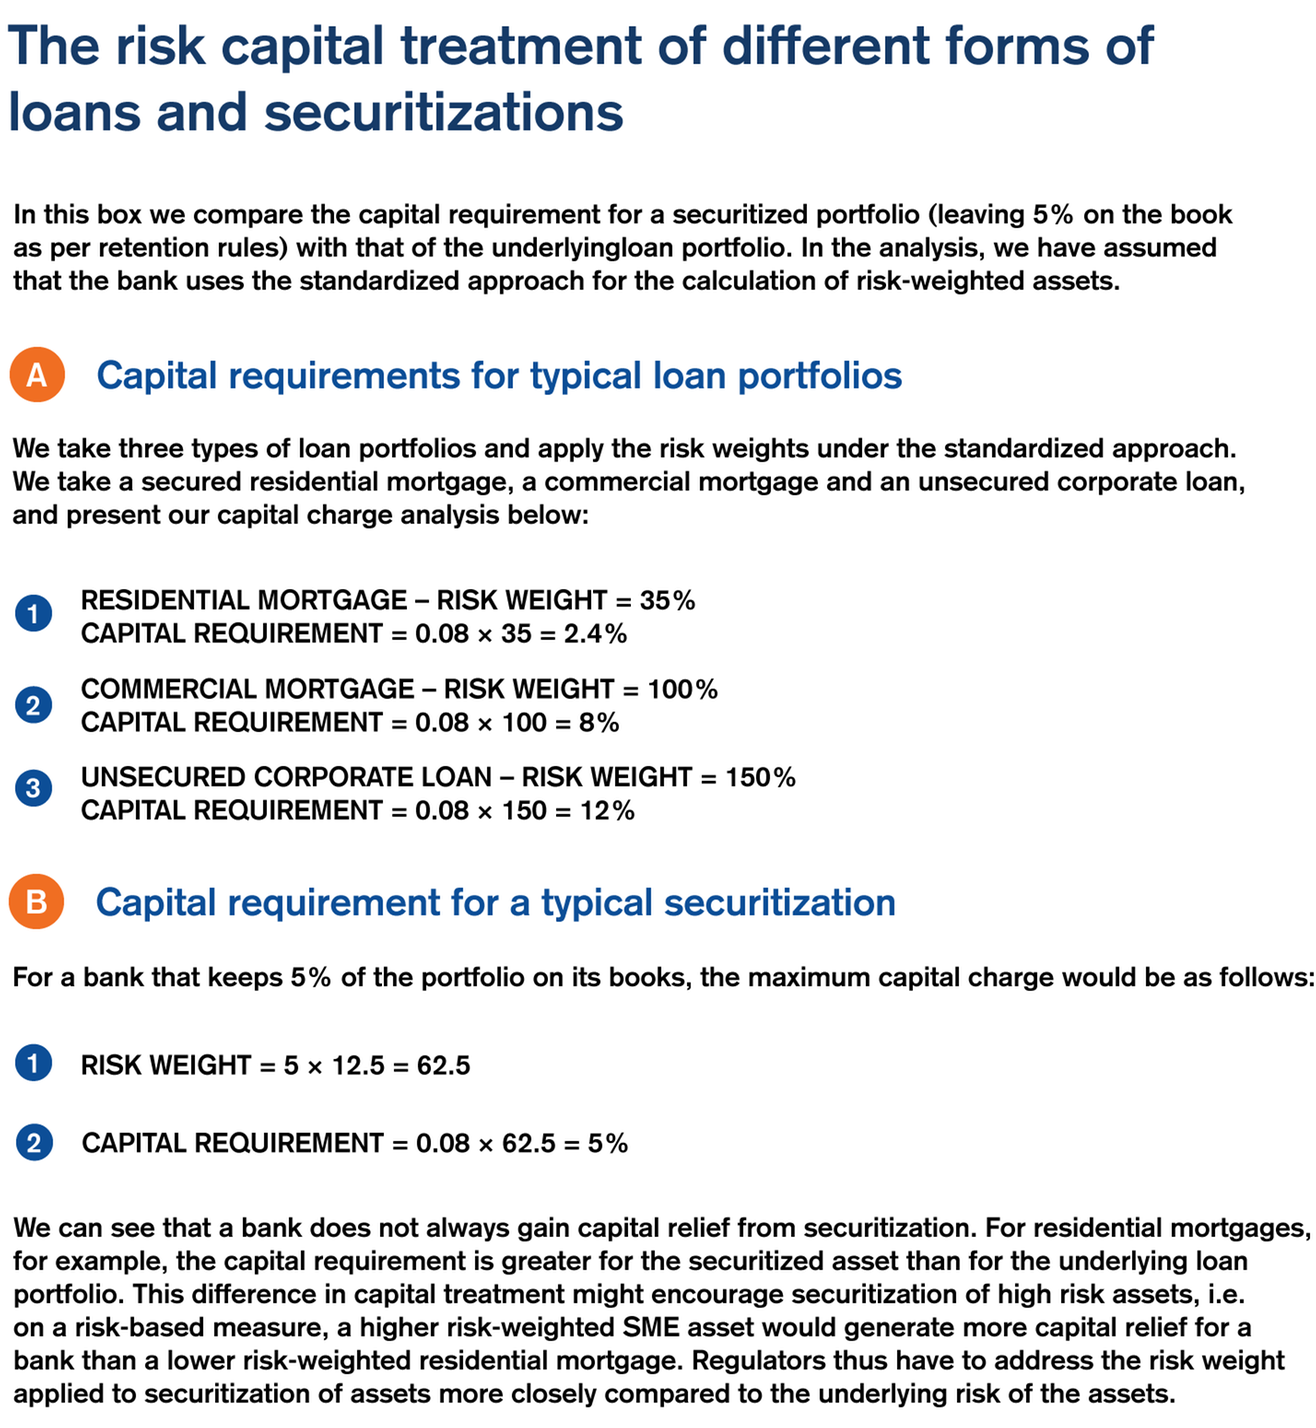 Fig. 3 Capital requirements for typical loan portfolios versus capital requirement for a typical securitization